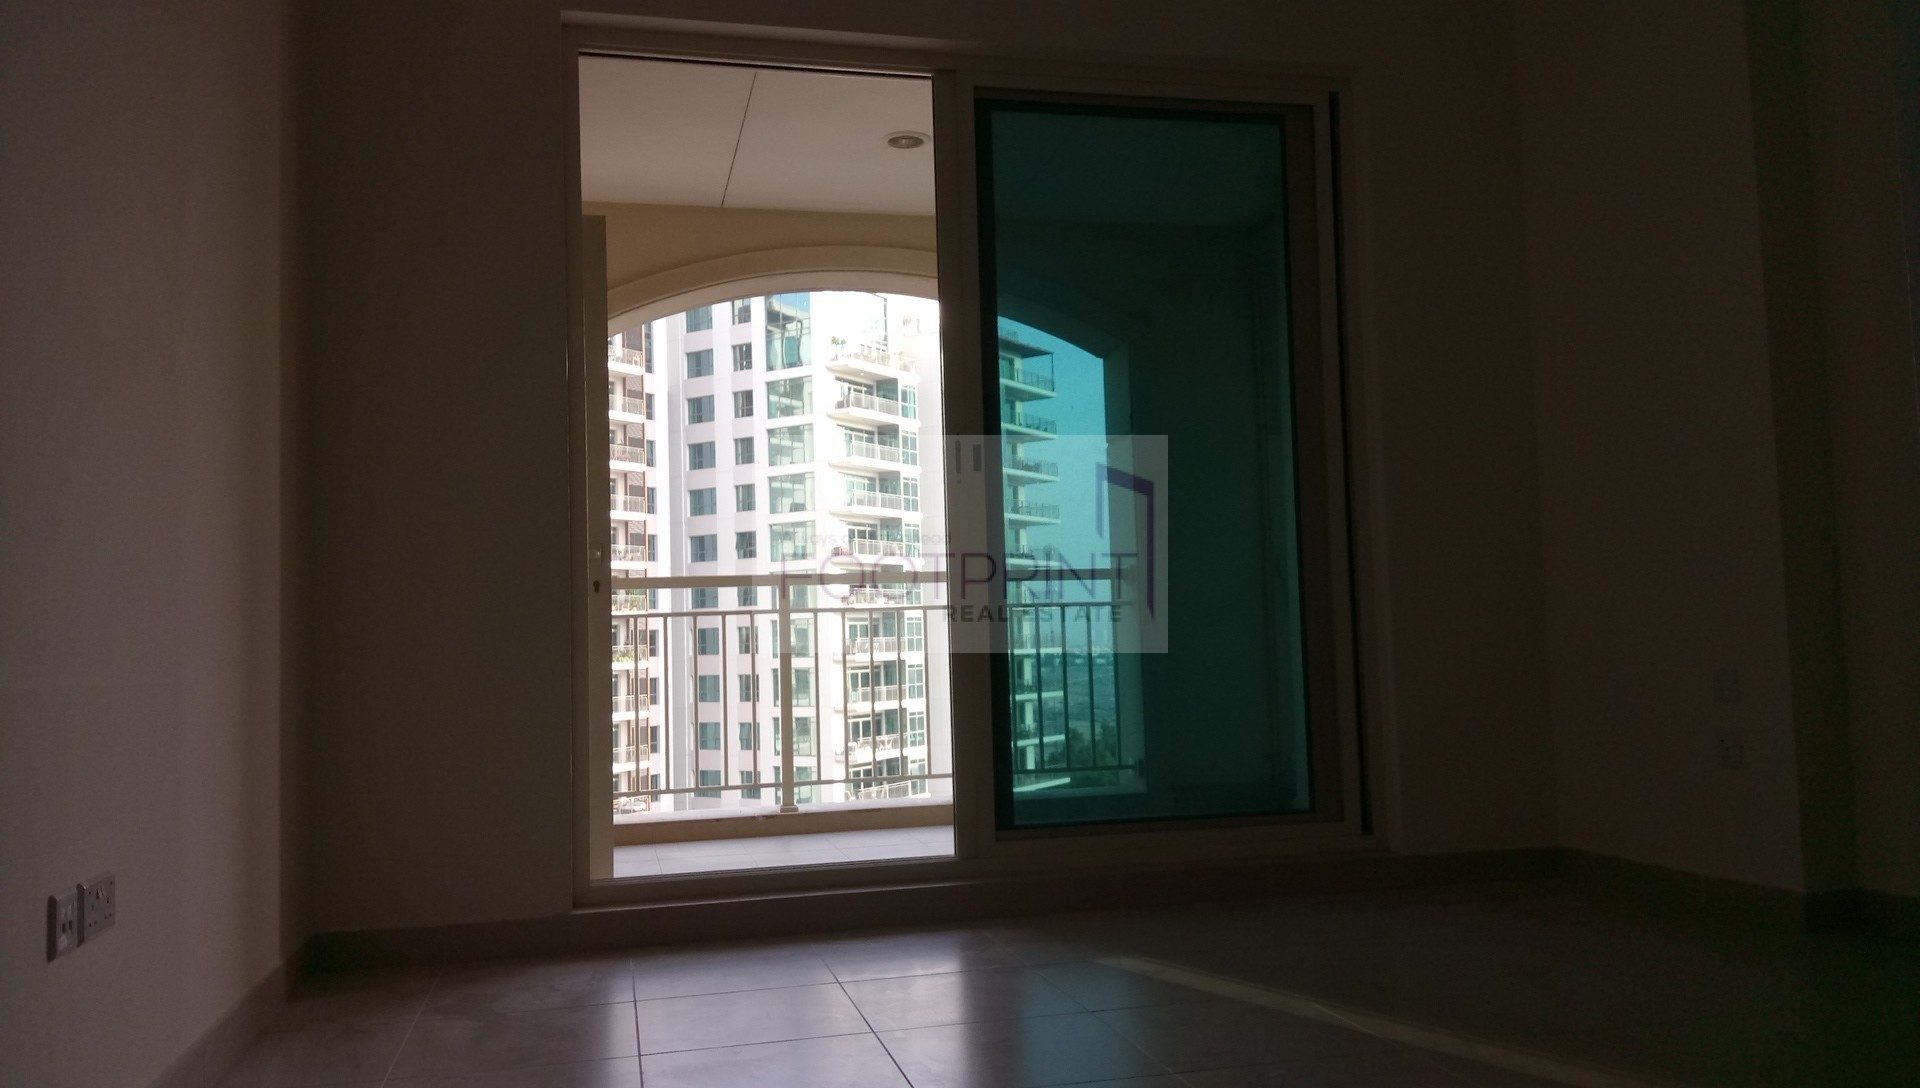 Canalview+Spacious living area+Hot price